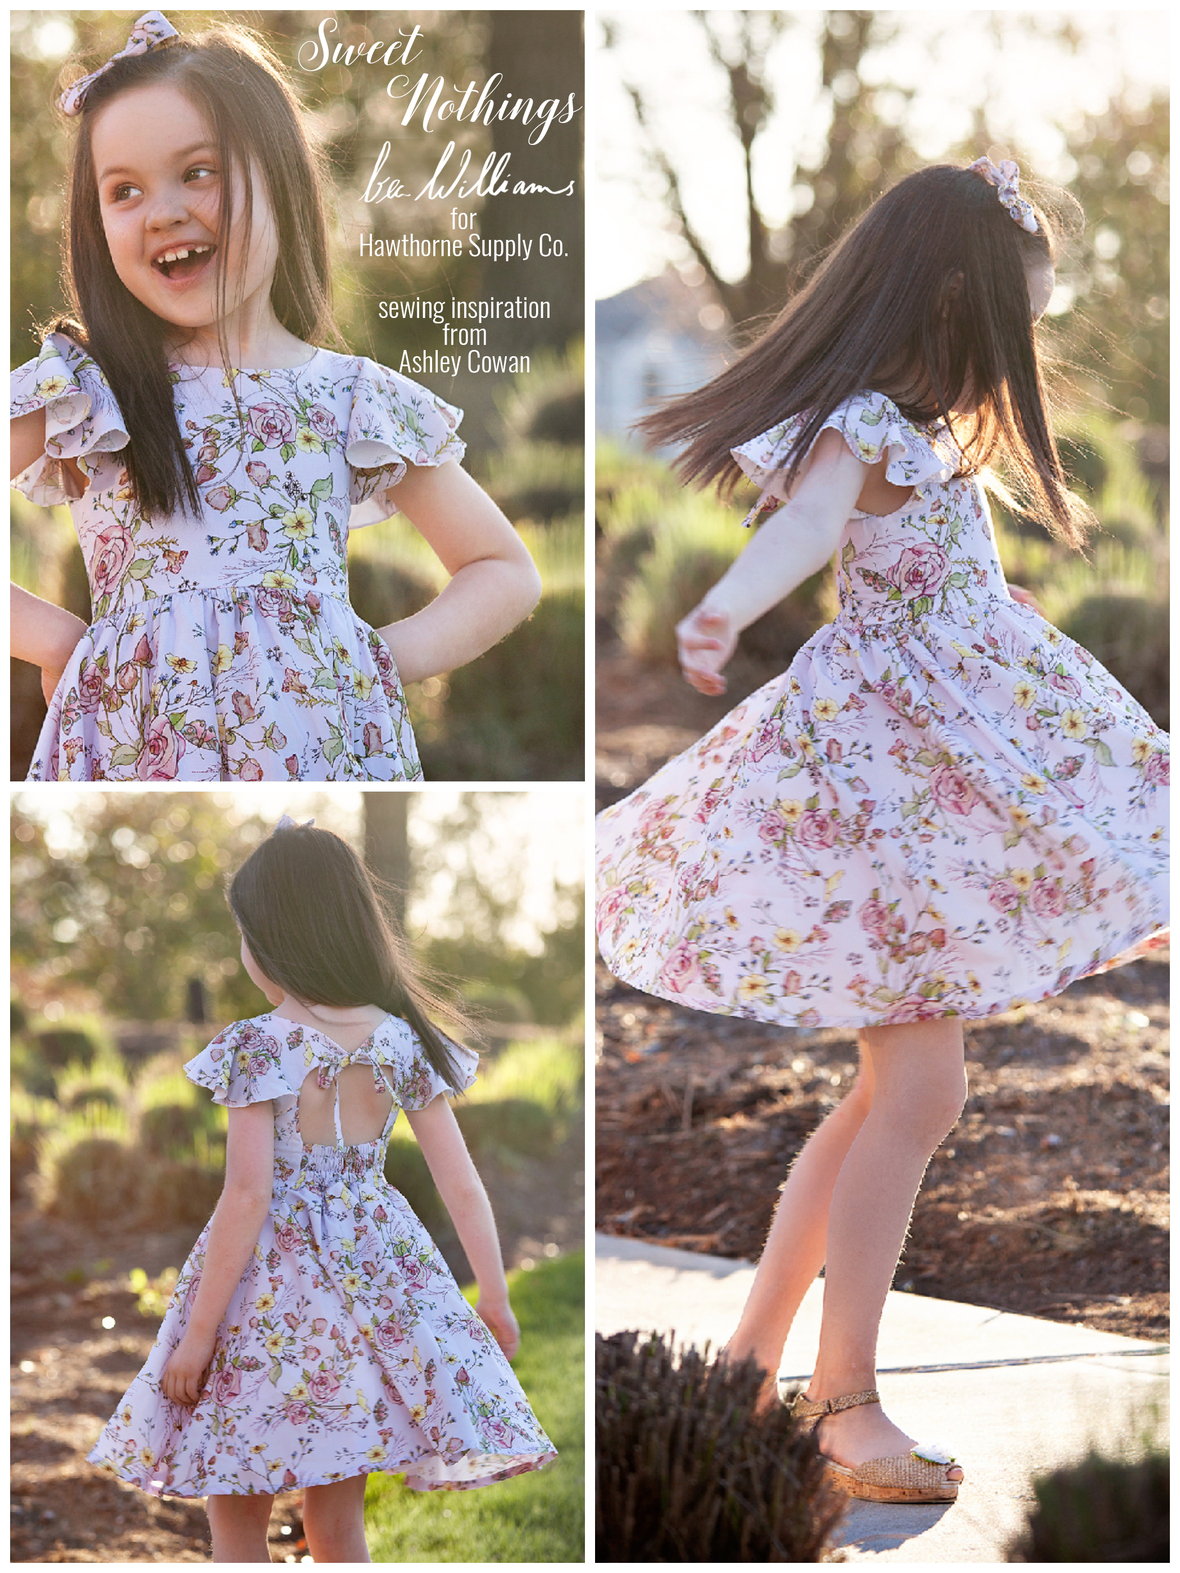 Bec Williams and Hawthorne Supply Co Sweet Nothings Dress by Ashley Cowan